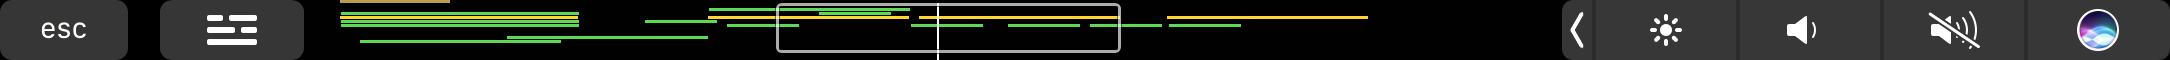 touch-bar-timeline-overiew